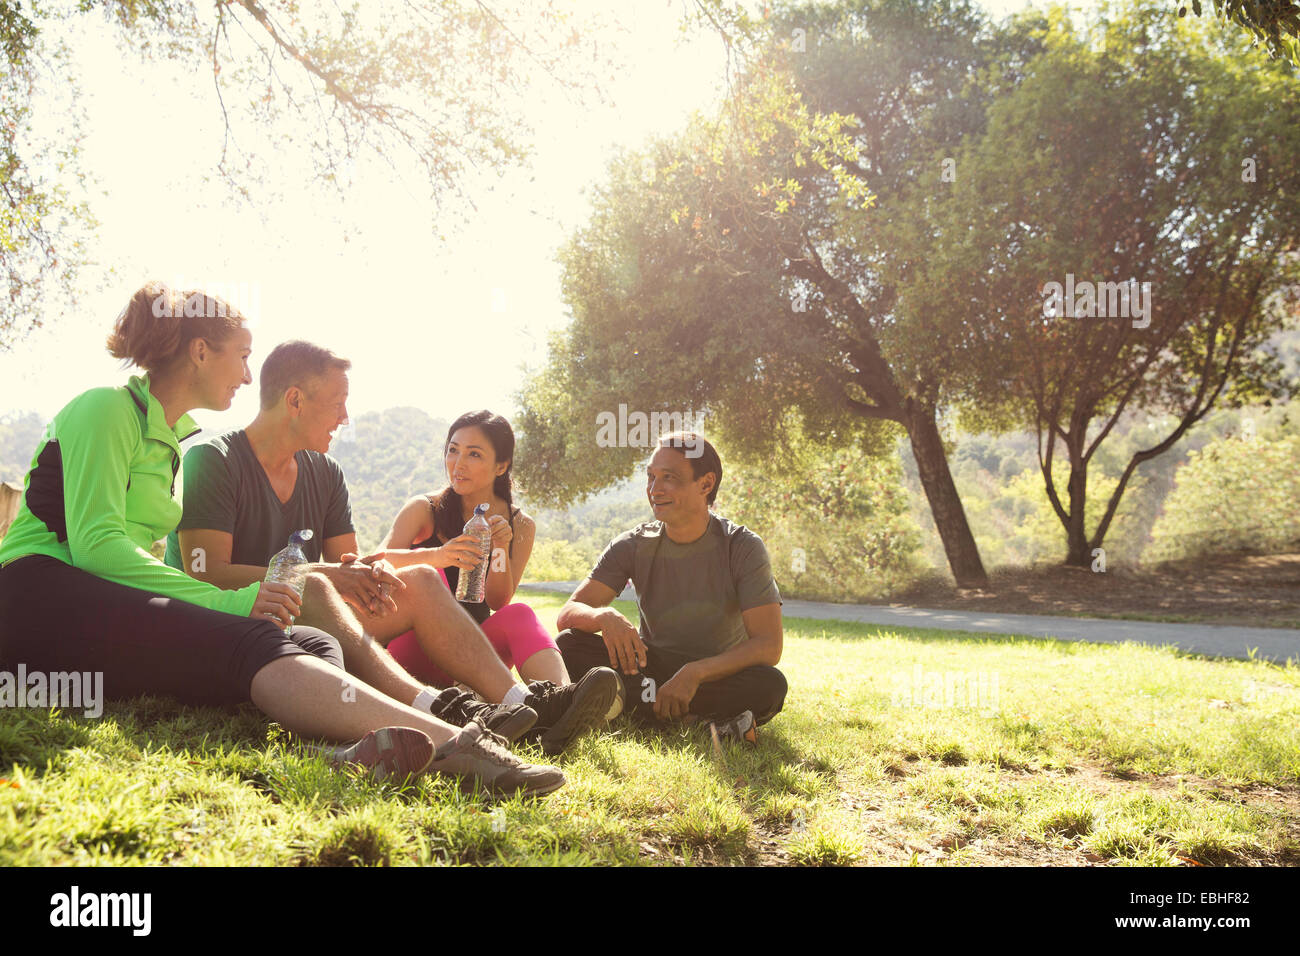 Four mature male and female runners sitting chatting in park Stock Photo